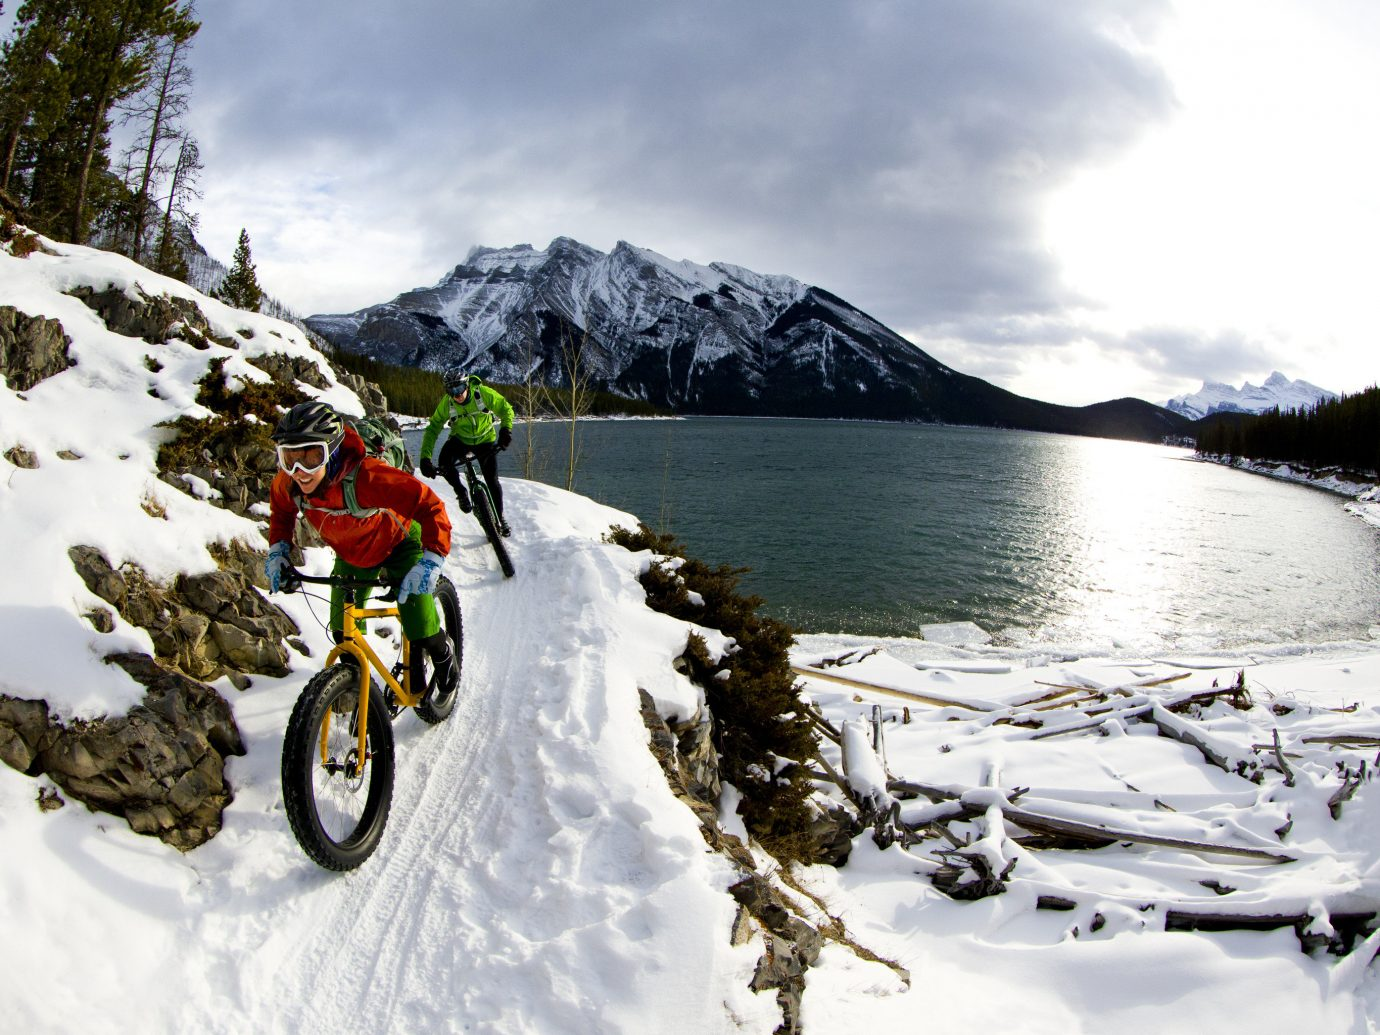 Offbeat outdoor sky snow mountainous landforms Winter mountain vehicle mountain range weather season bicycle motorcycle mountain bike alps extreme sport freeride winter sport mountain biking sports equipment